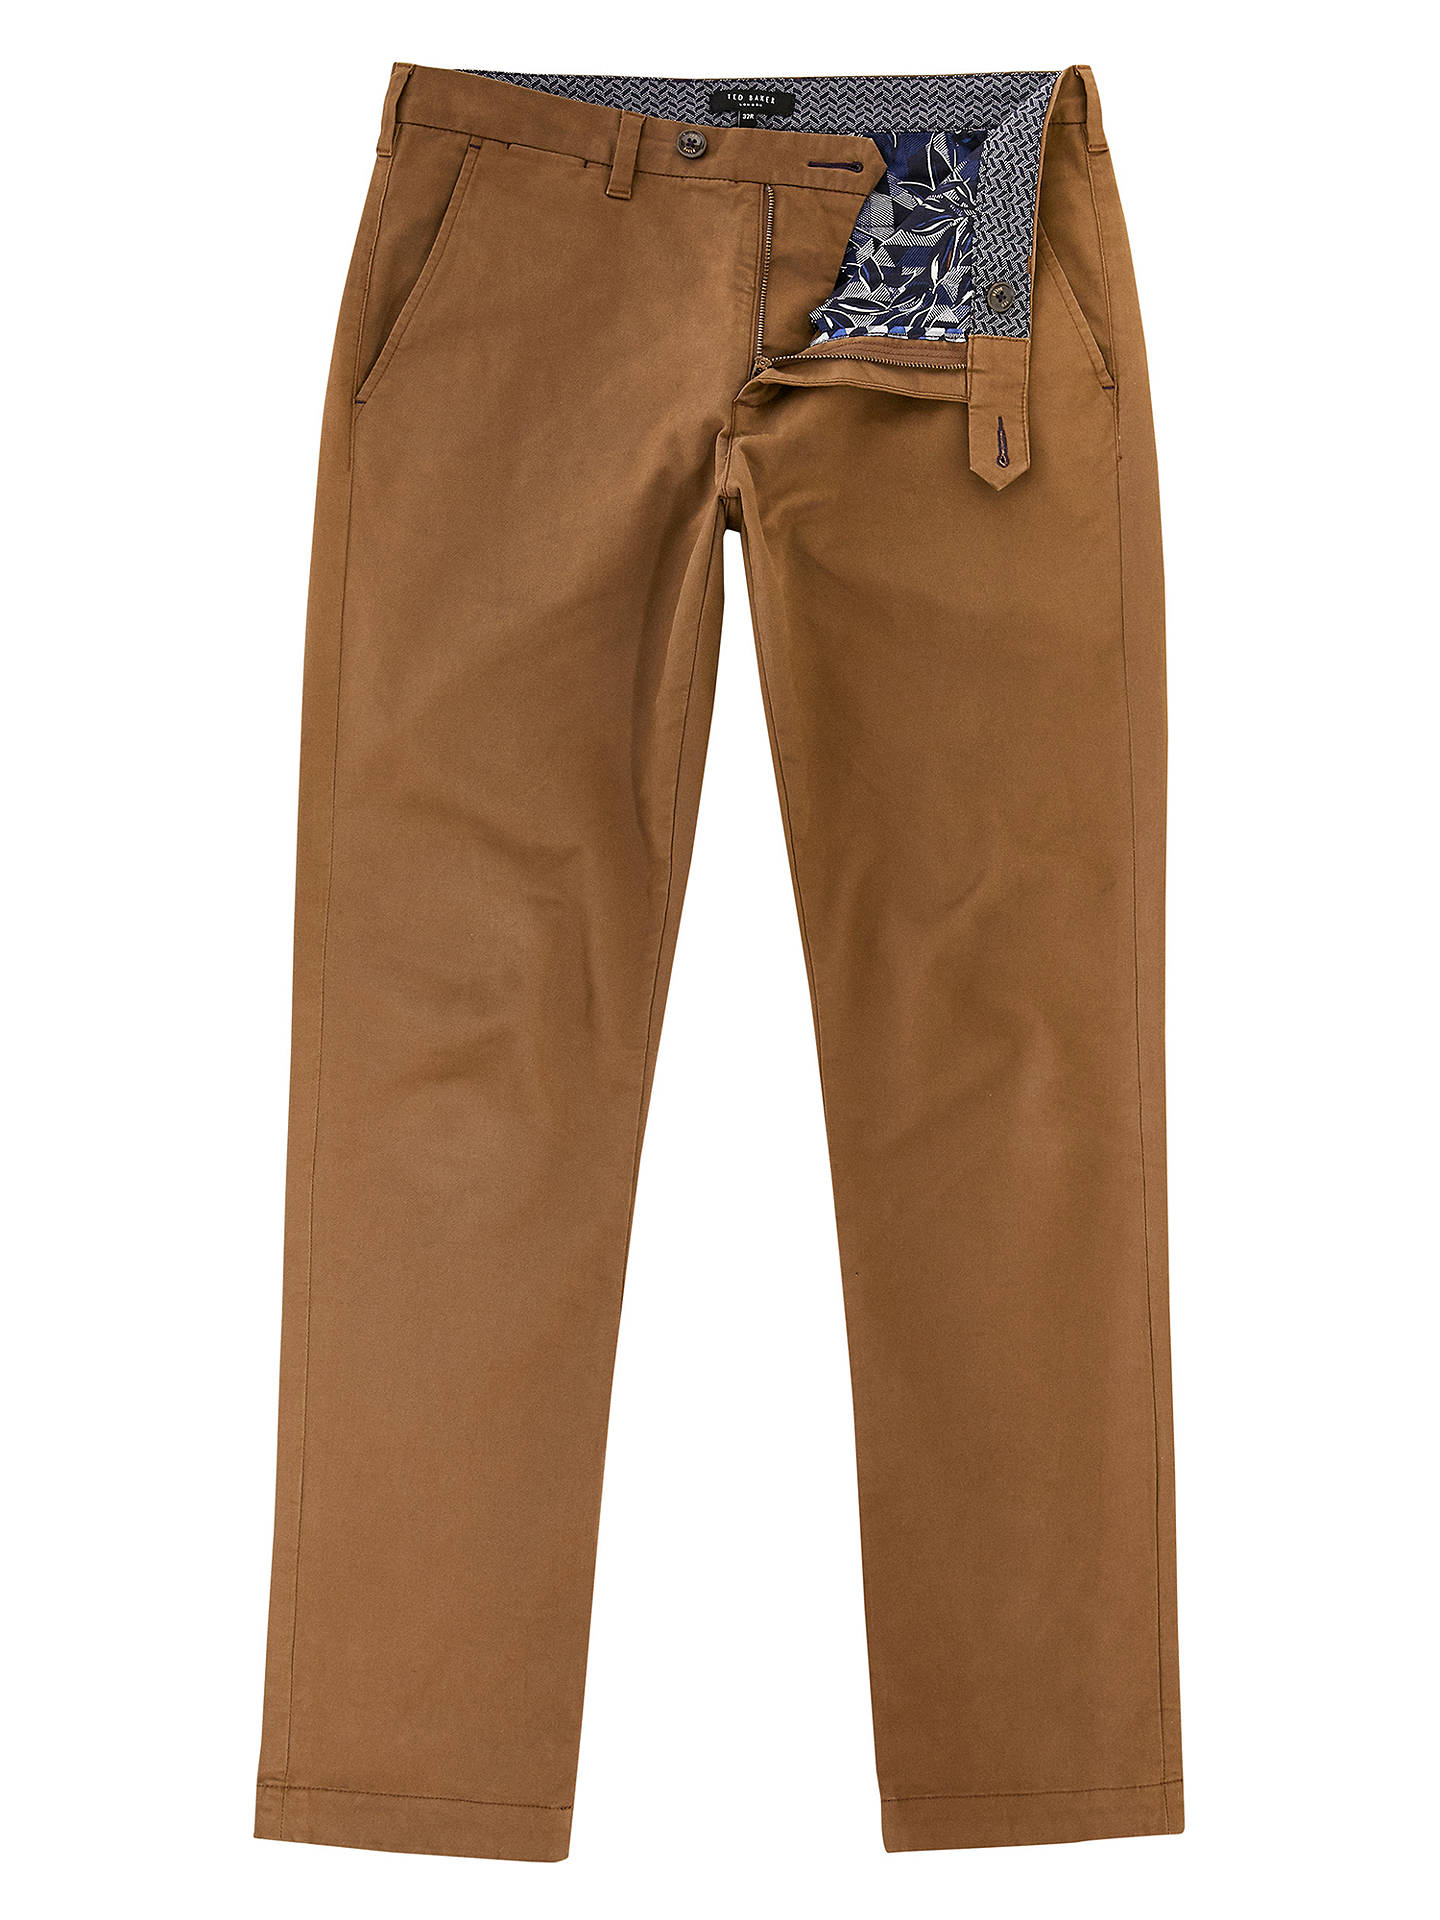 BuyTed Baker Clascor Chino Trousers, Tan, 32R Online at johnlewis.com